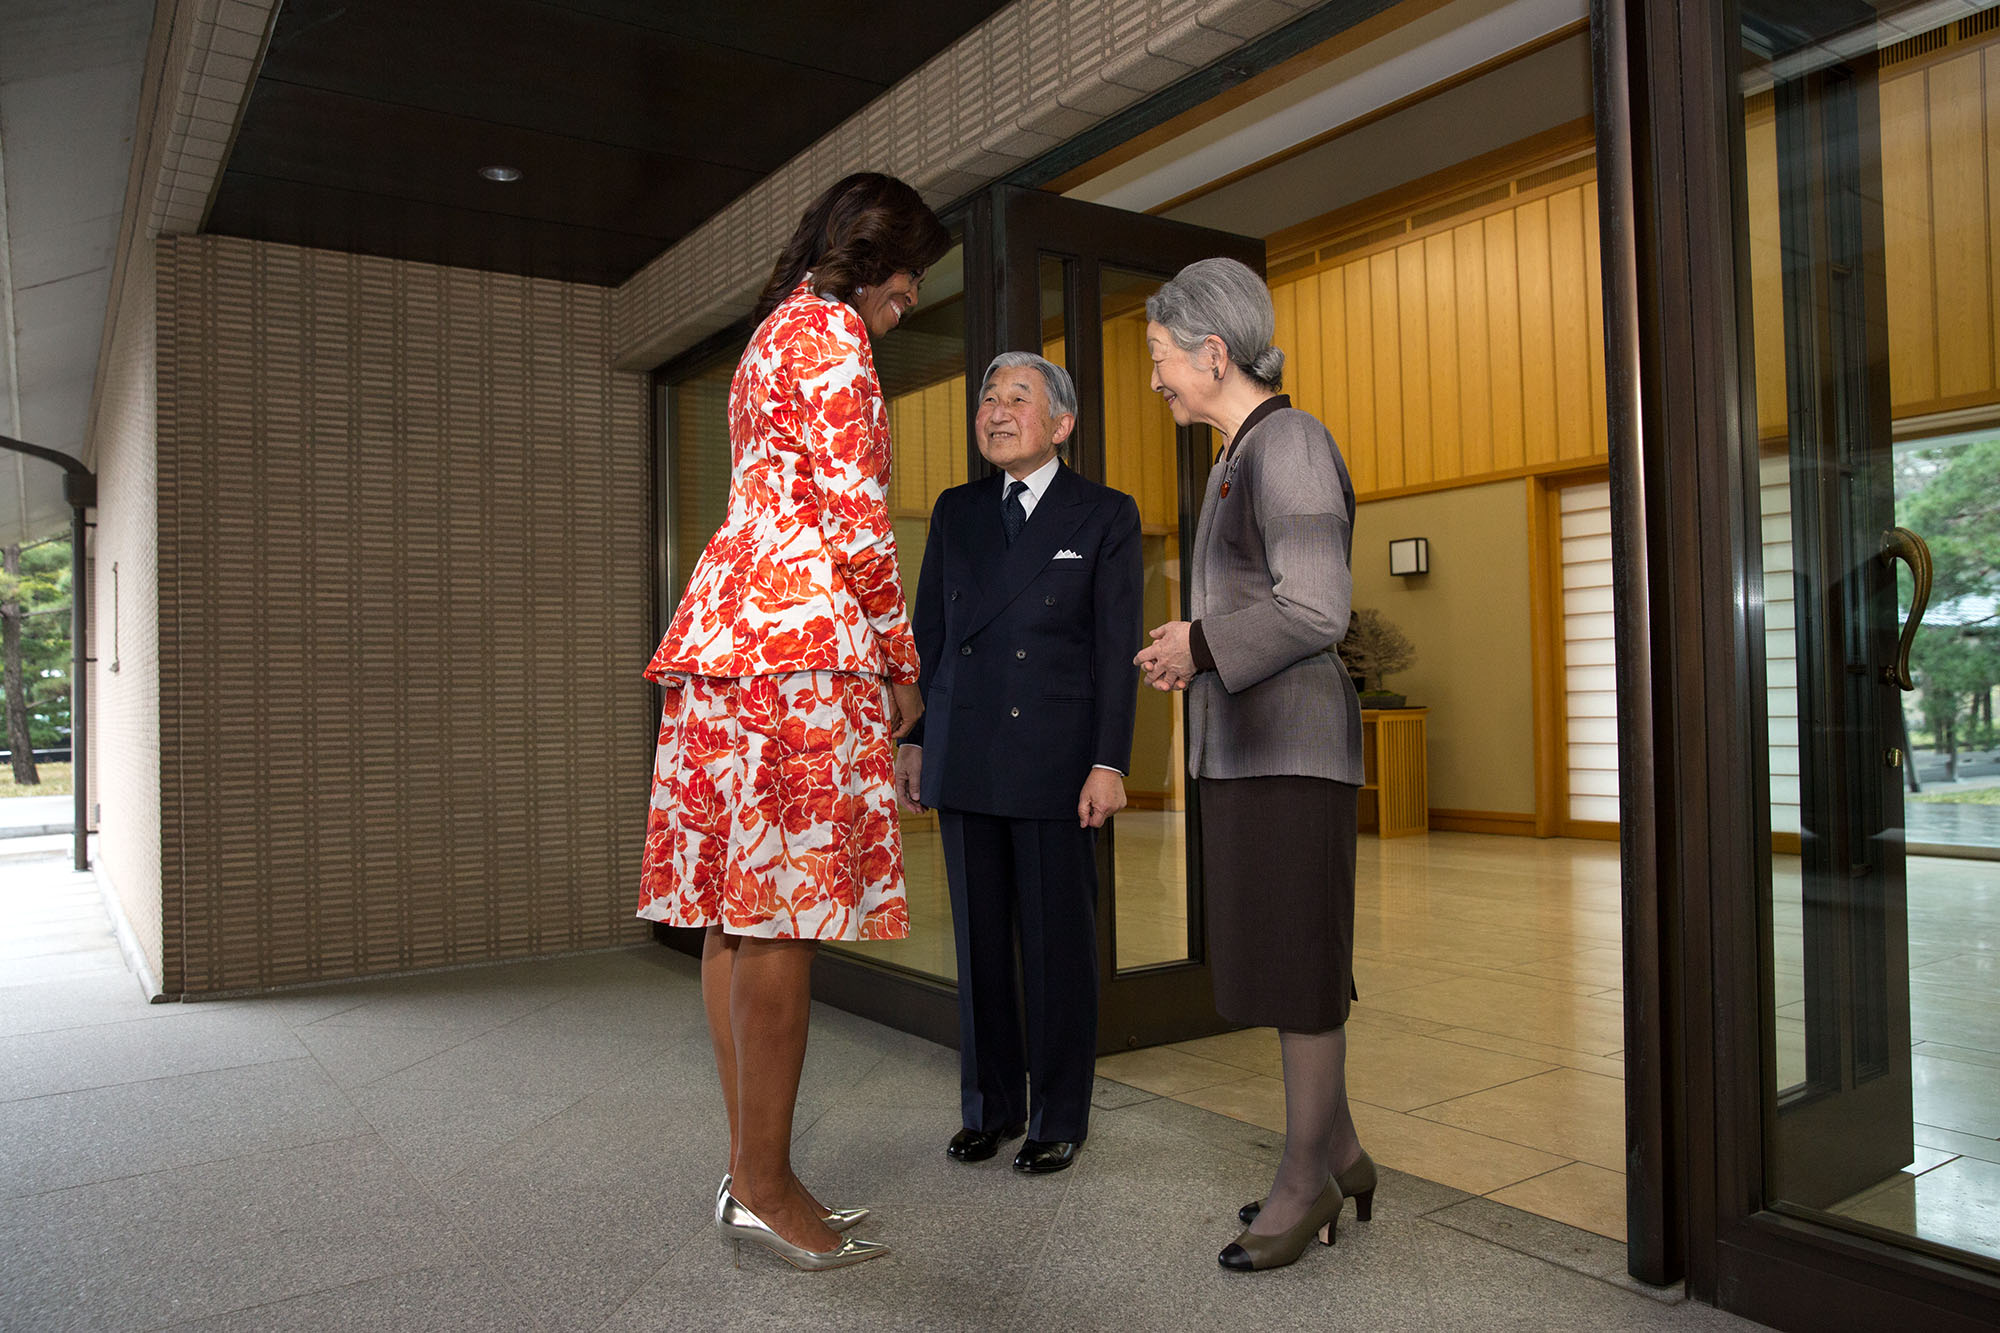 The Emperor and Empress greet the First Lady  at the Imperial Palace in Tokyo. (Official White House Photo by Amanda Lucidon)